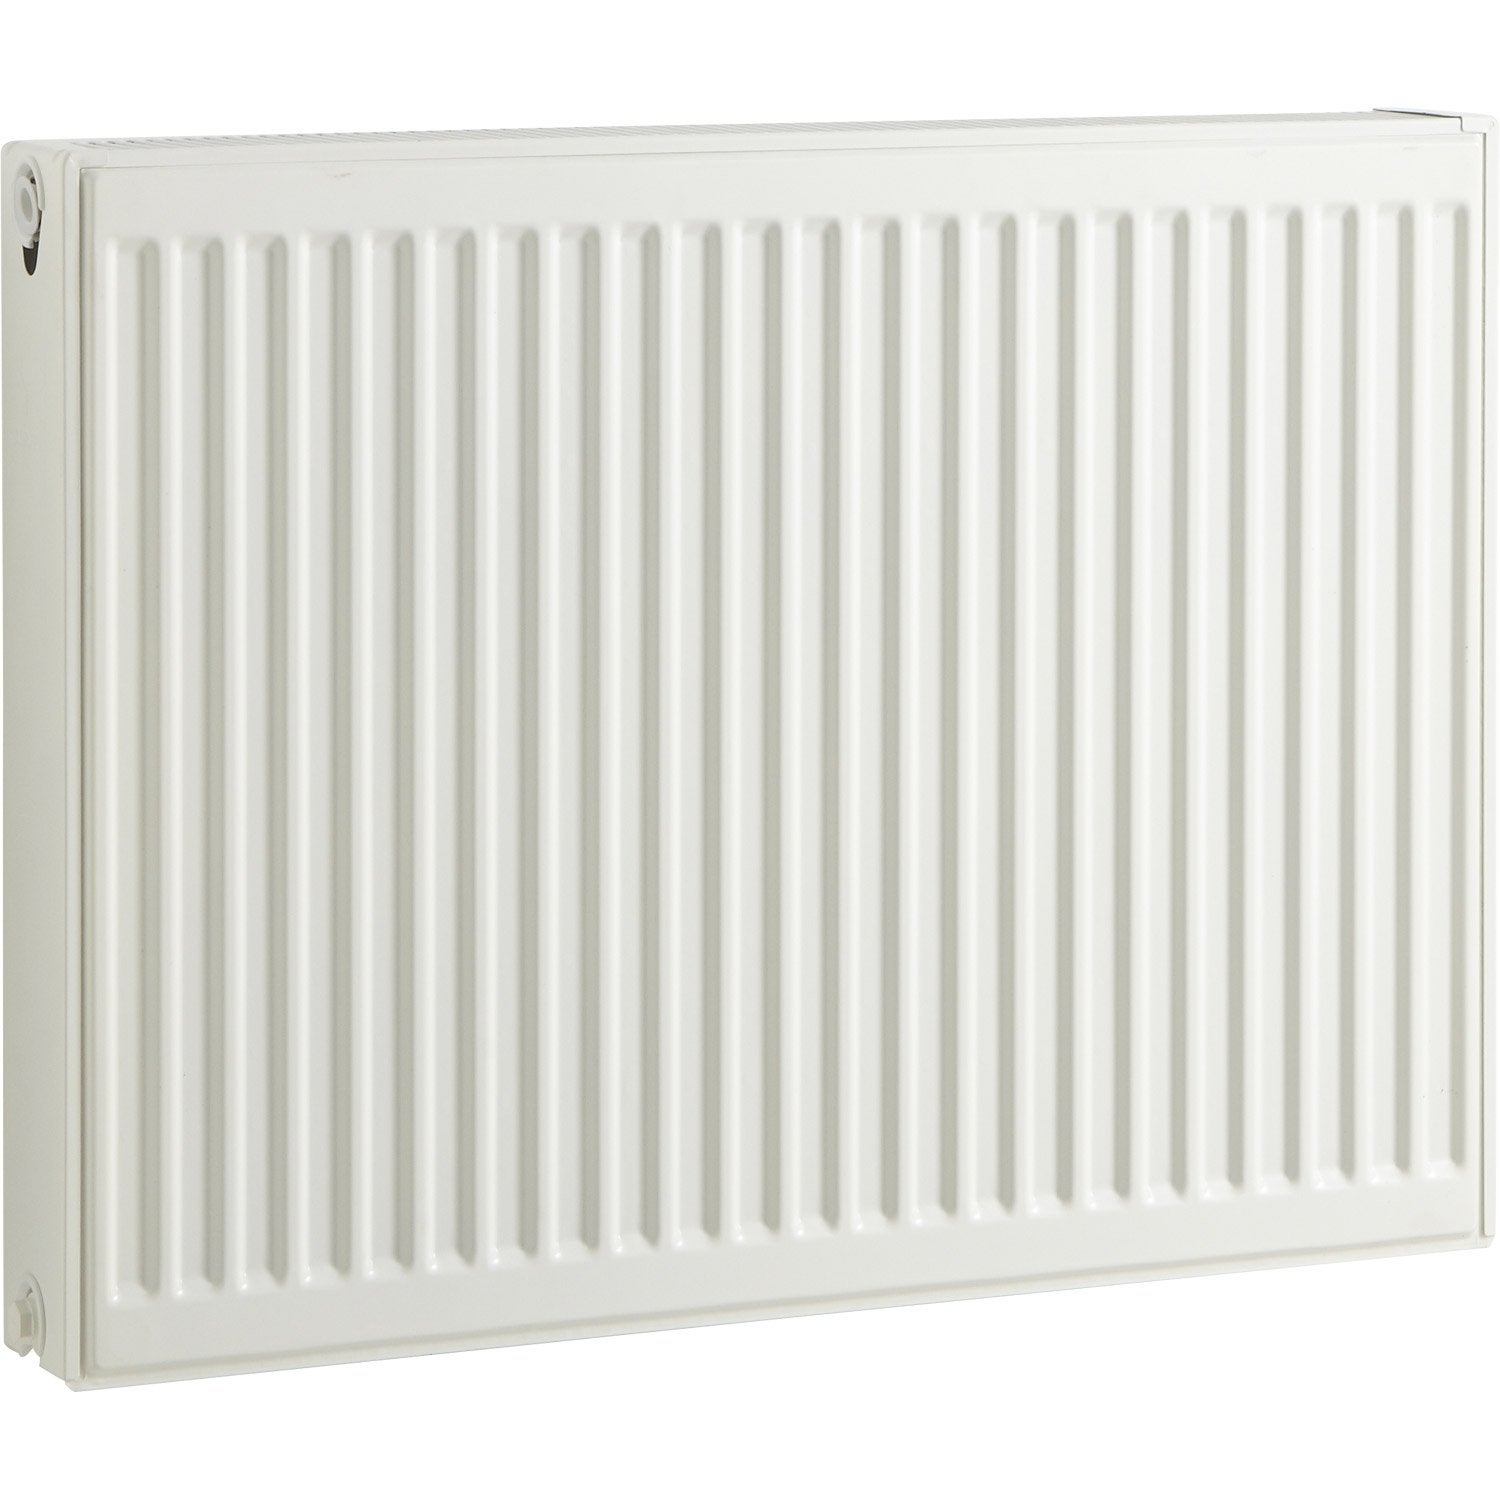 radiateur chauffage central blanc cm 1370 w leroy merlin. Black Bedroom Furniture Sets. Home Design Ideas